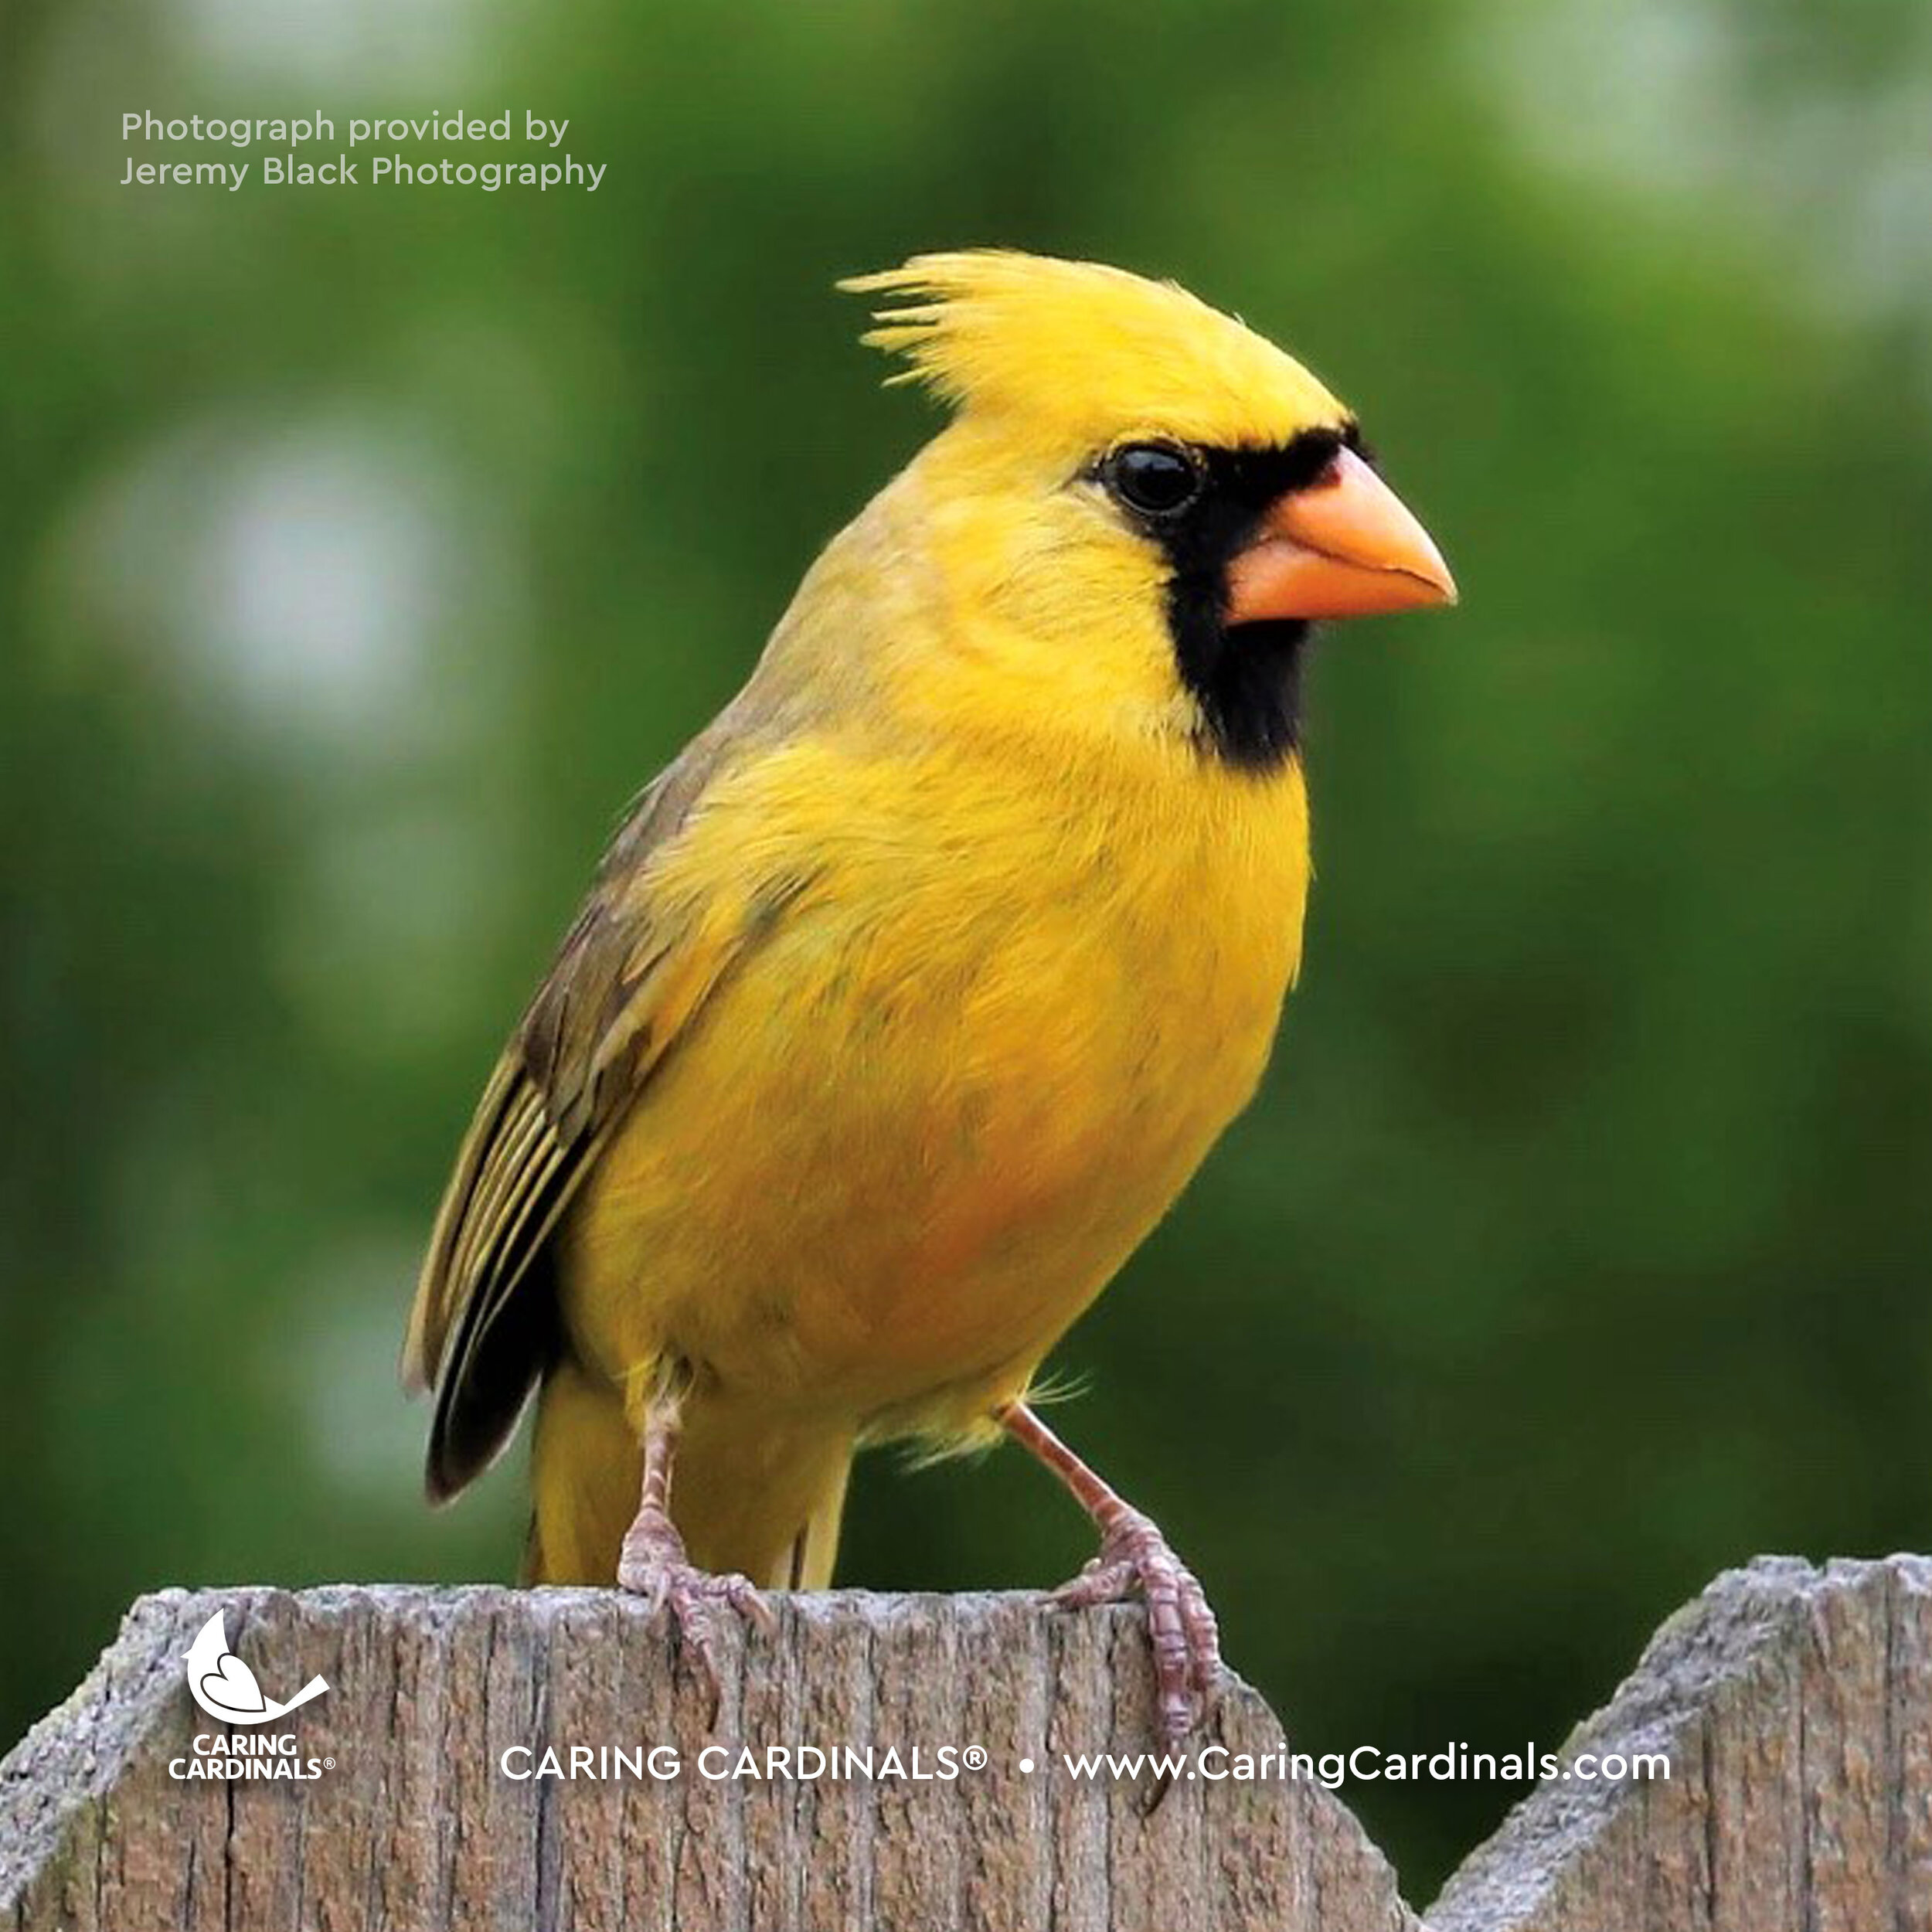 The Yellow Cardinal.jpg